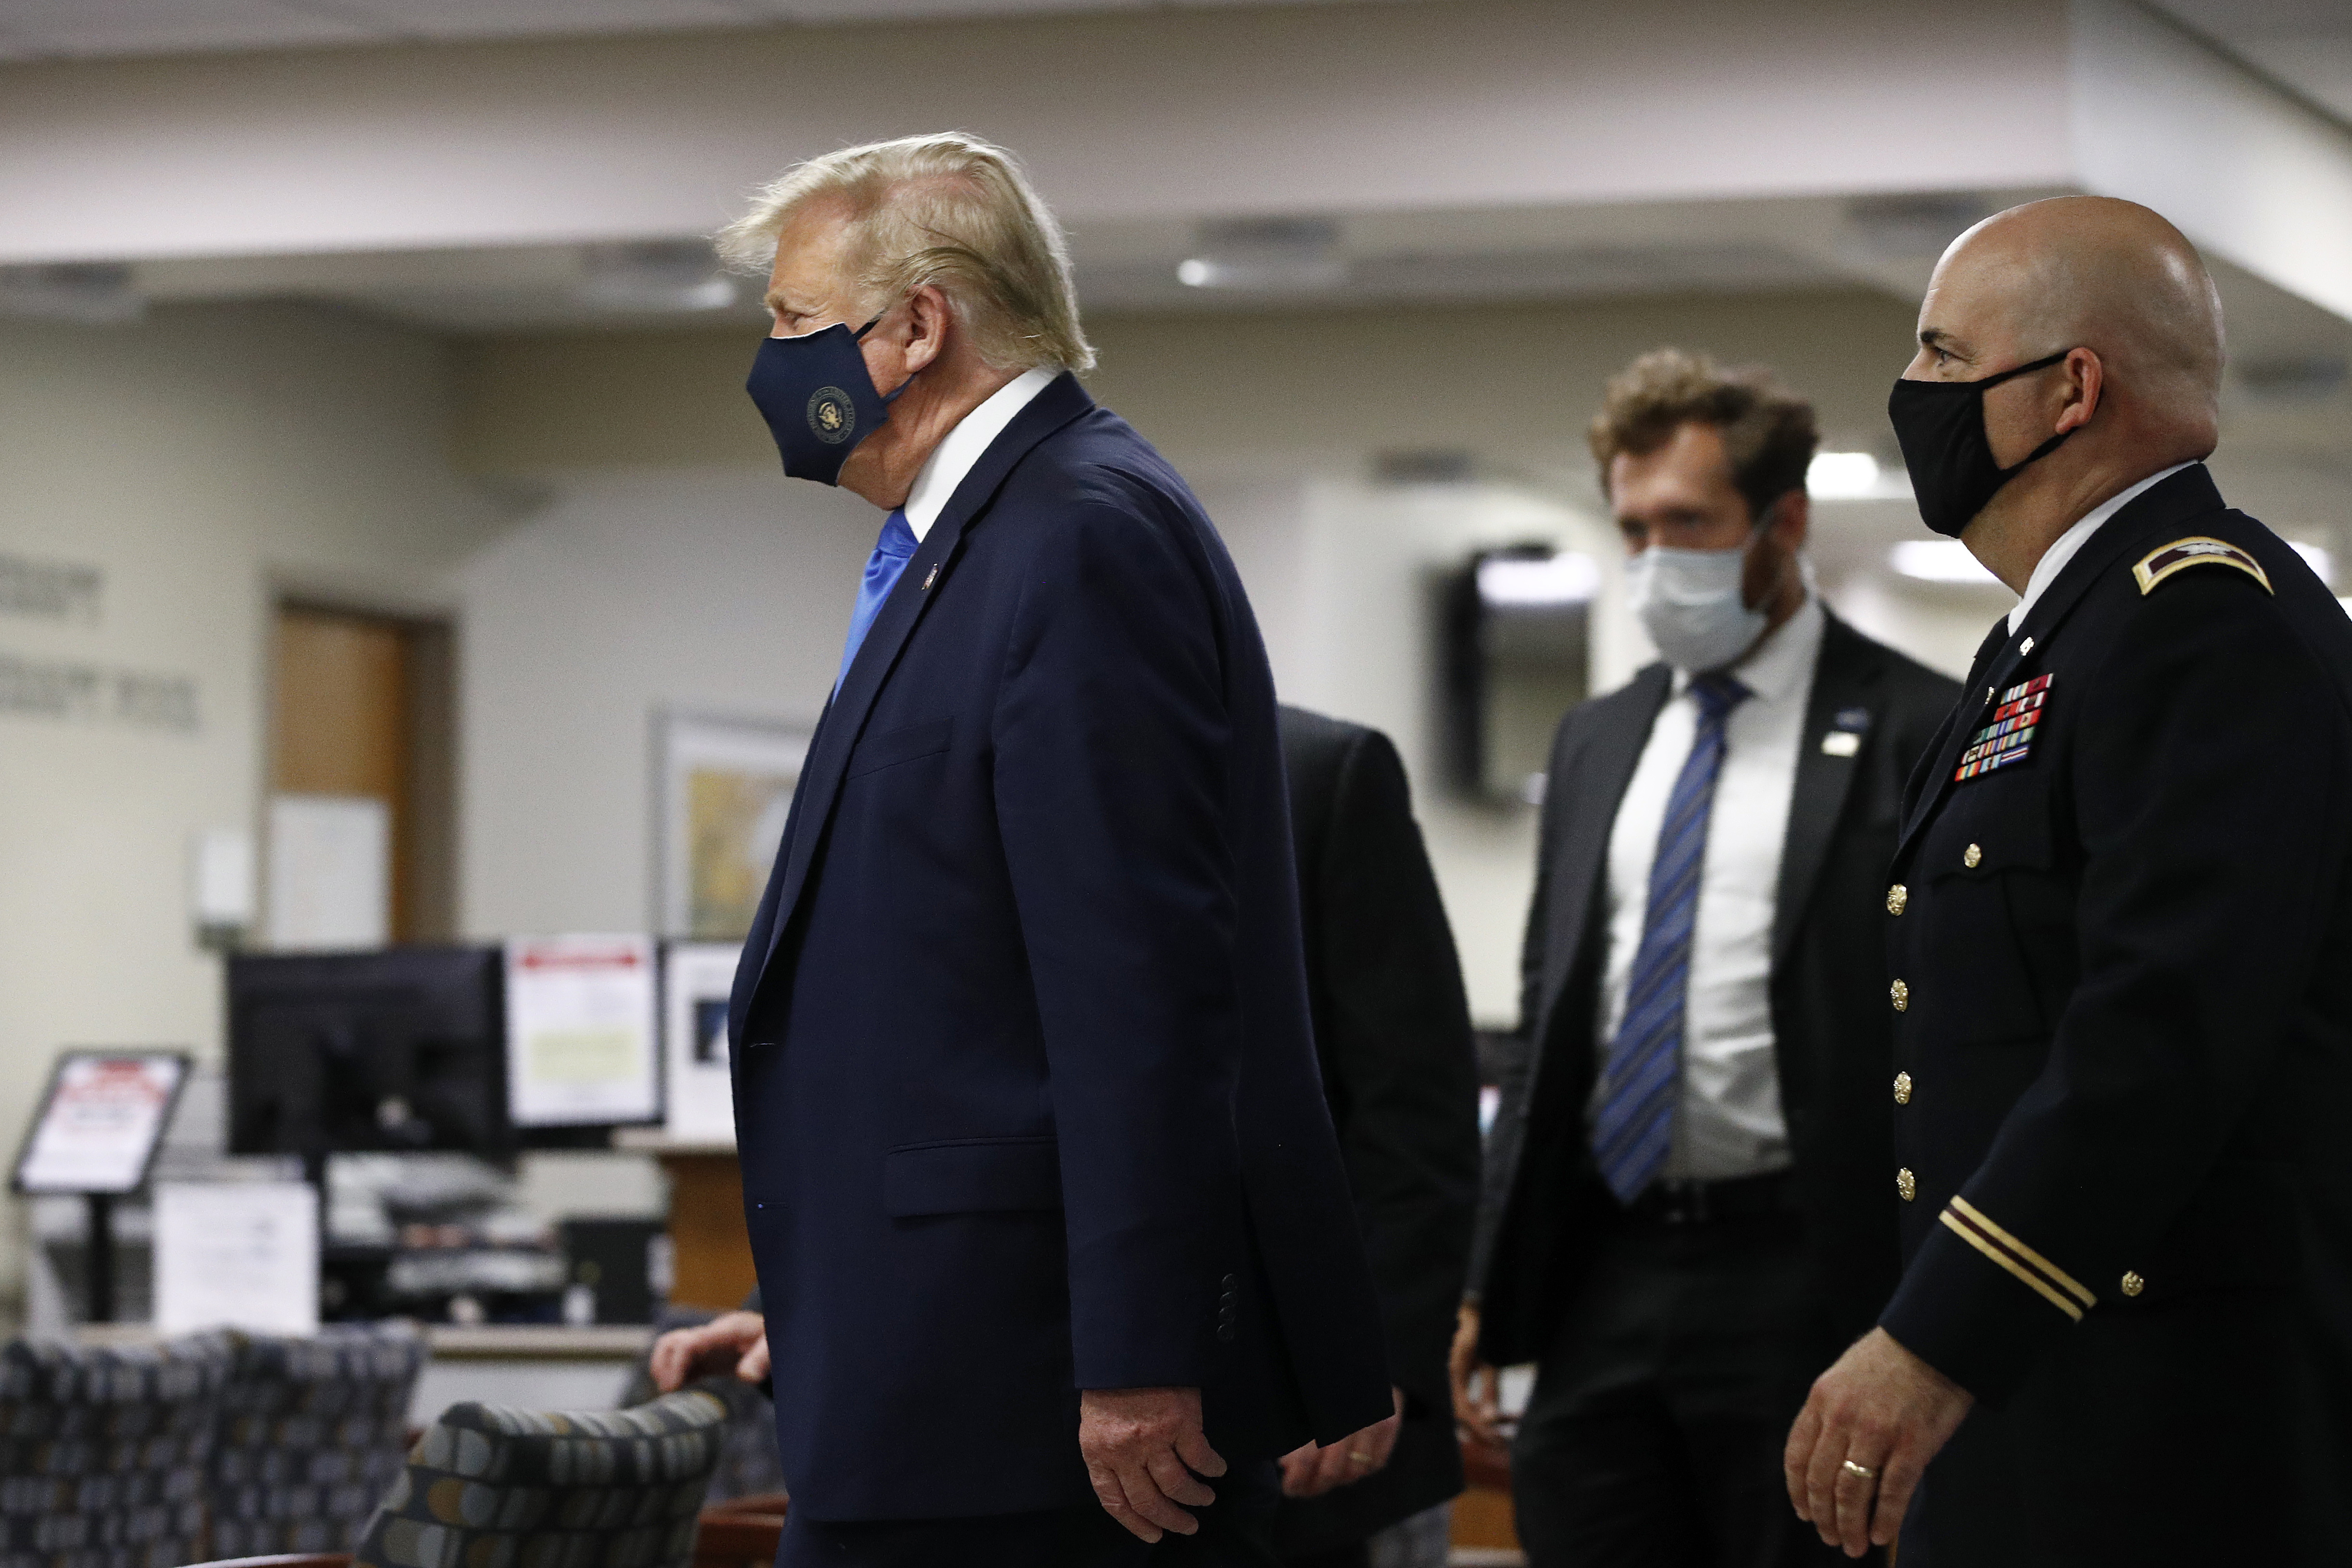 time.com - President Trump Wears Face Mask in Public for First Time During Pandemic